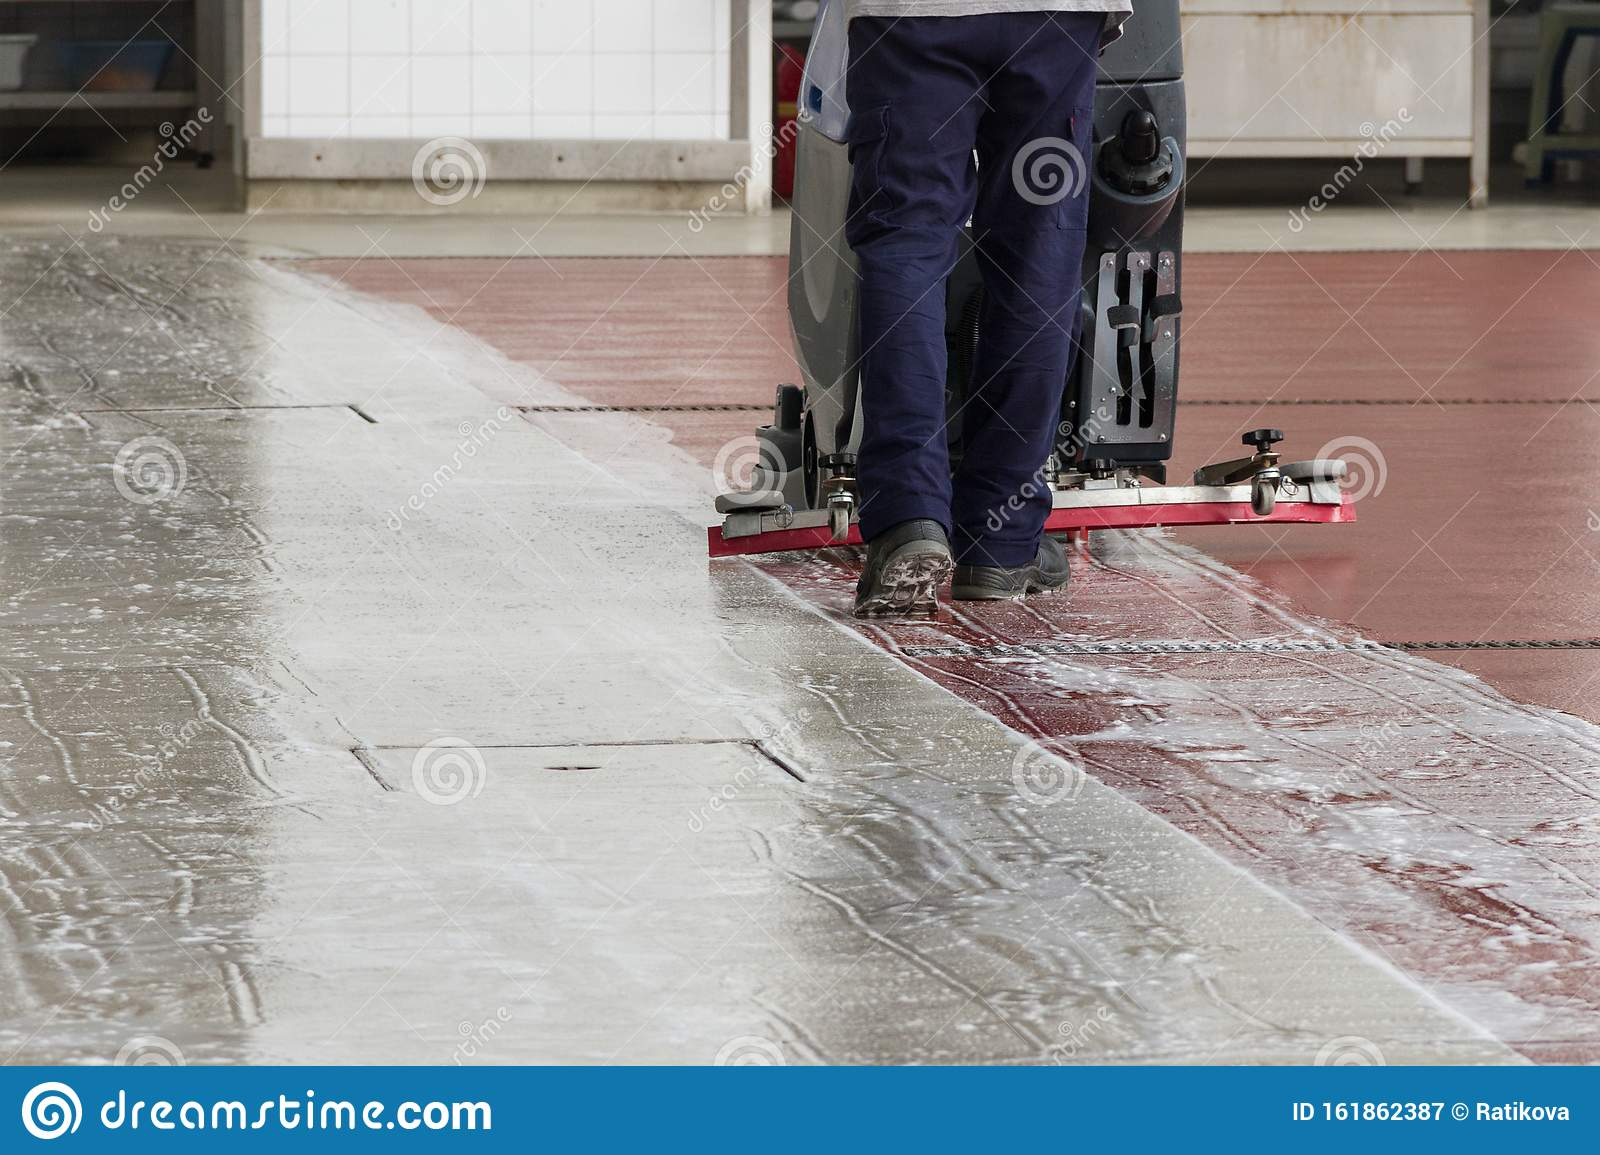 Man Cleaning Granite Floor Stock Image Image Of Housework 161862387